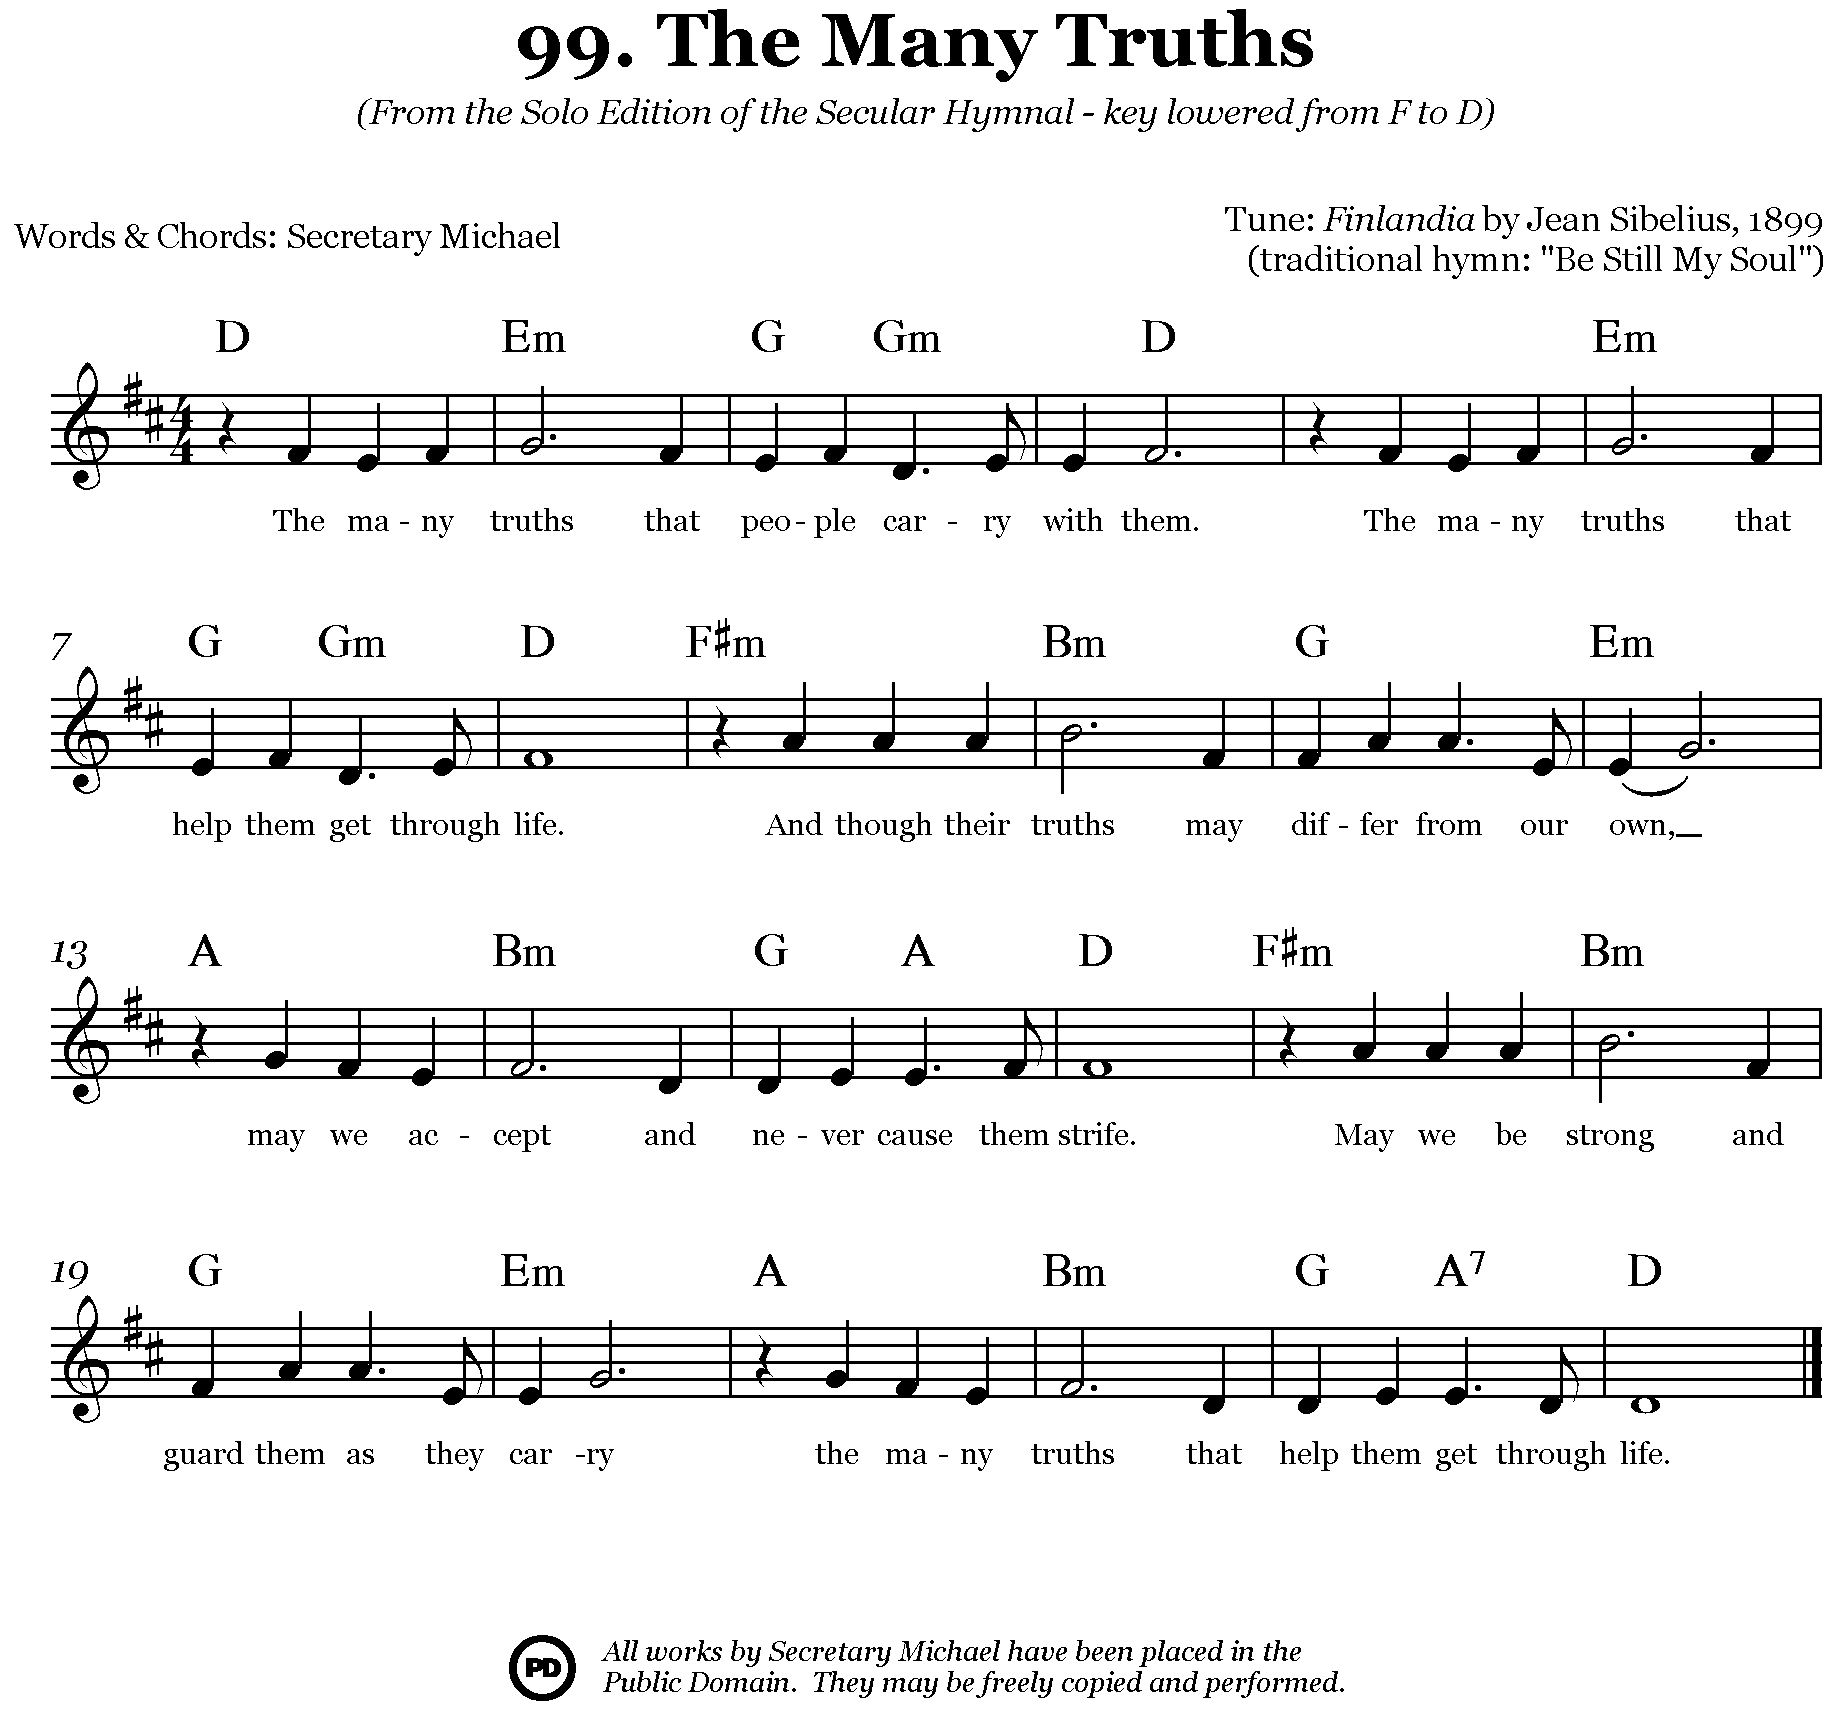 The many truths singing along to a simple chorded melody like this is an ideal way to develop your harmonizing skills hexwebz Images